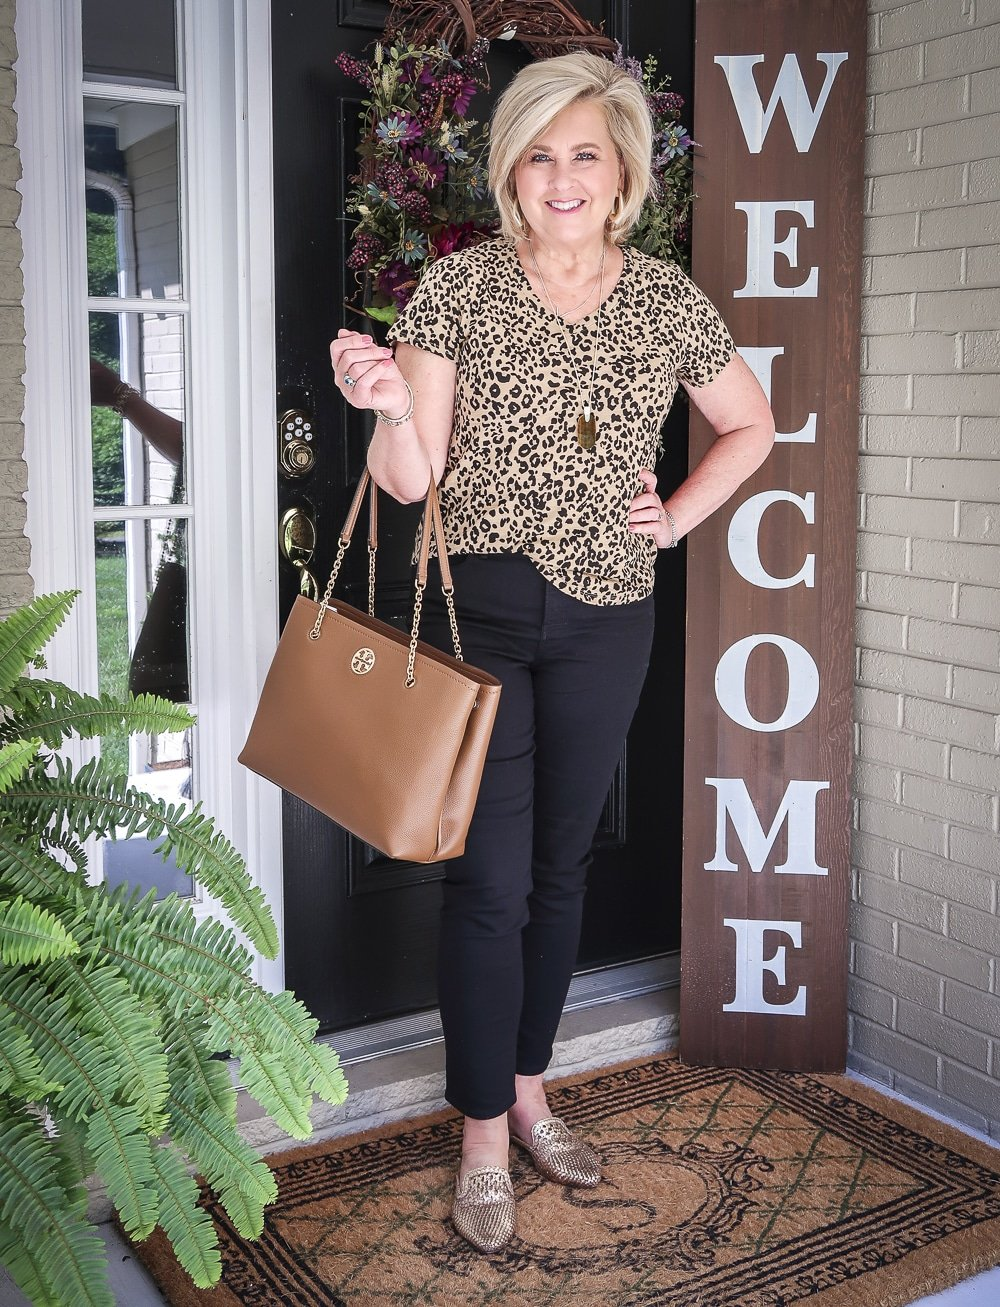 Fashion Blogger 50 Is Not Old is wearing a v-neck leopard tee, black jeans, gold mules, and carrying a brown Tory Burch tote